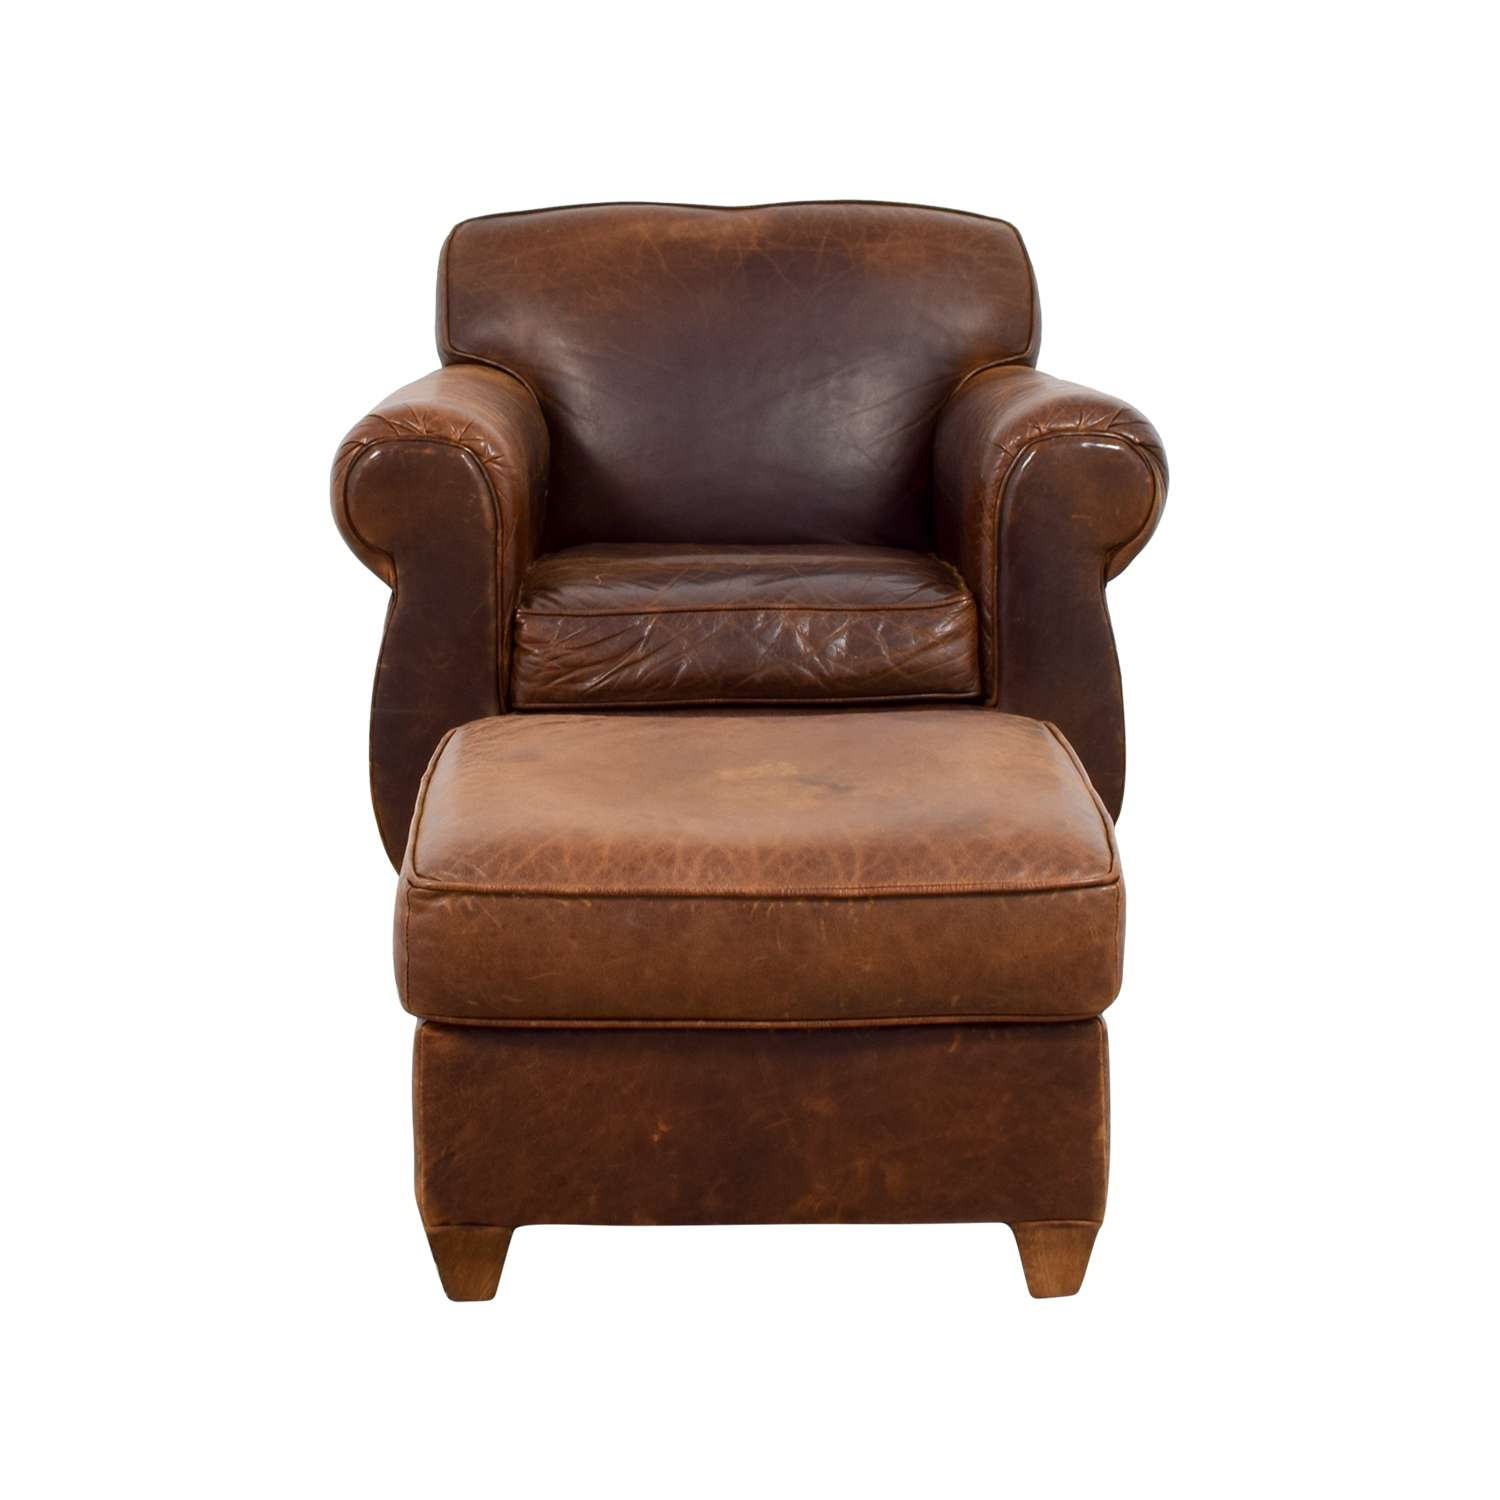 90% OFF Dark Brown Leather and Sage Green Ottoman Chairs